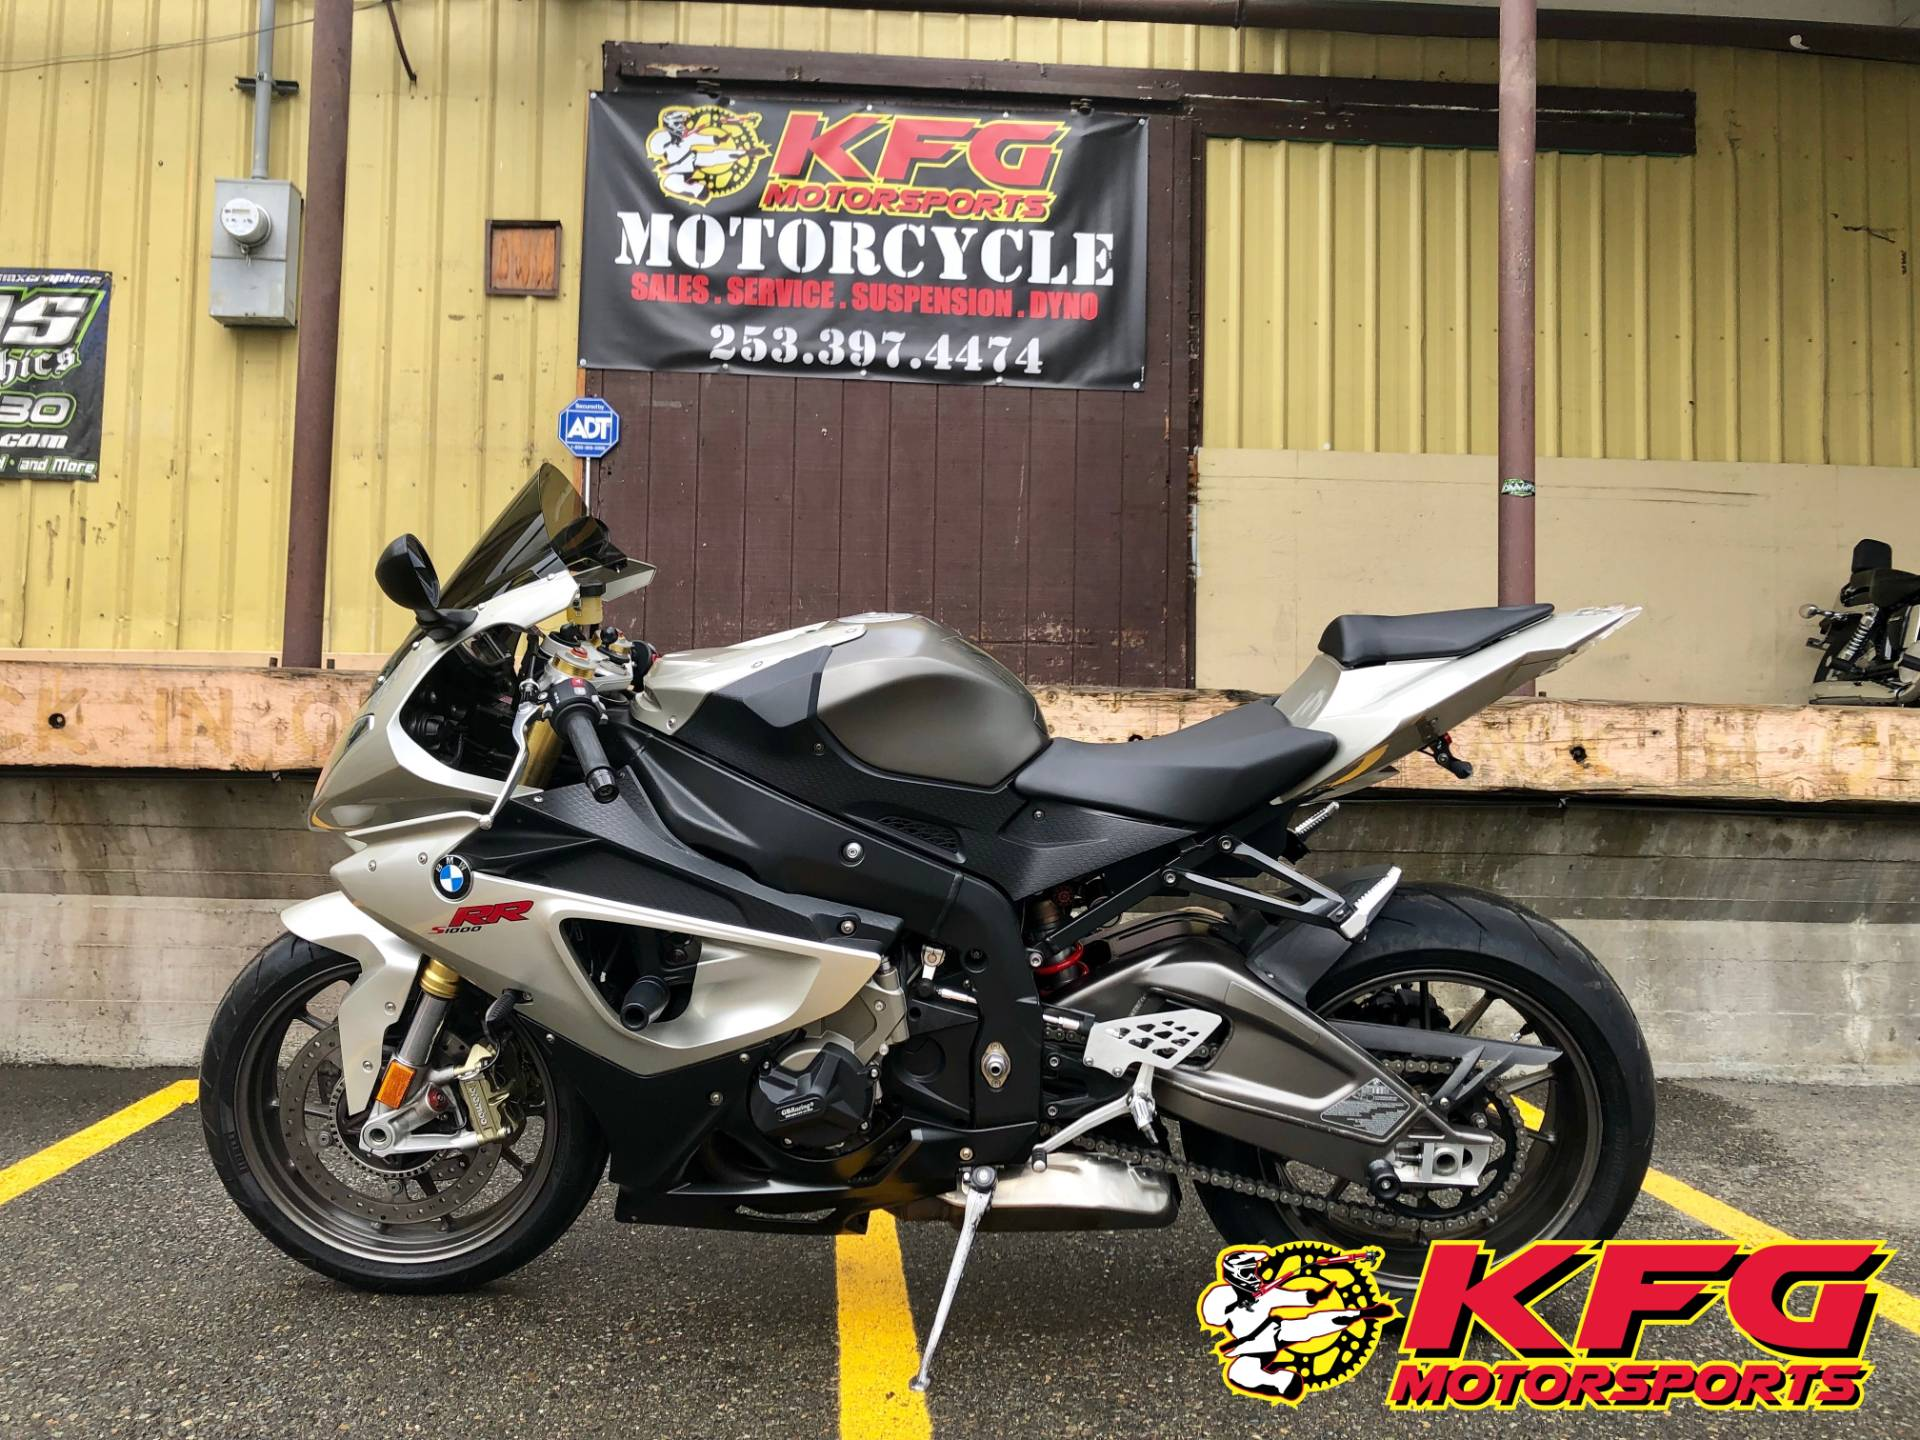 2010 BMW S 1000 RR in Auburn, Washington - Photo 2